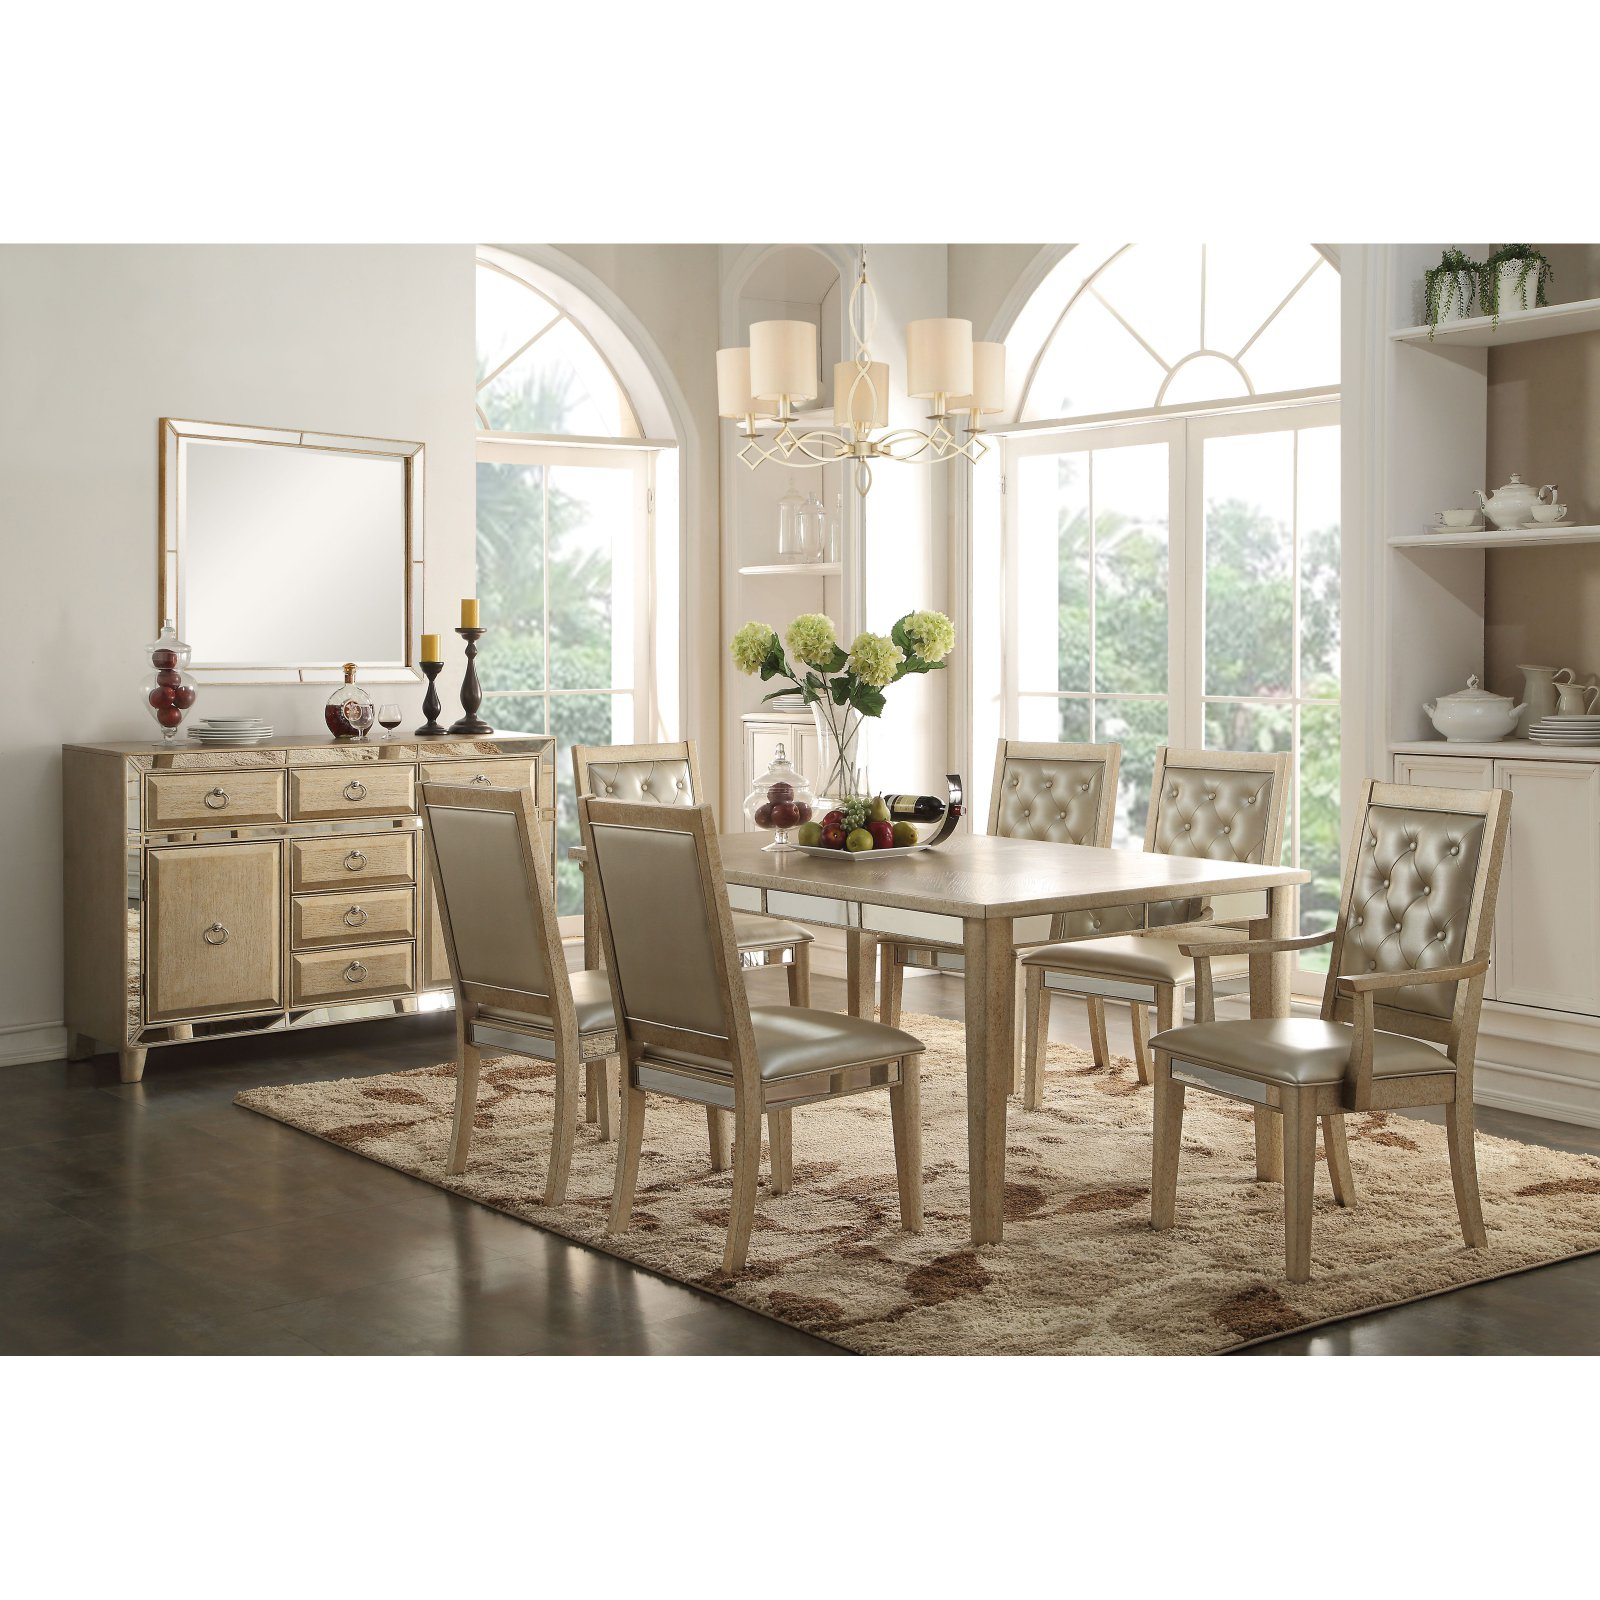 Acme Furniture Voeville Dining Table - Antique Gold